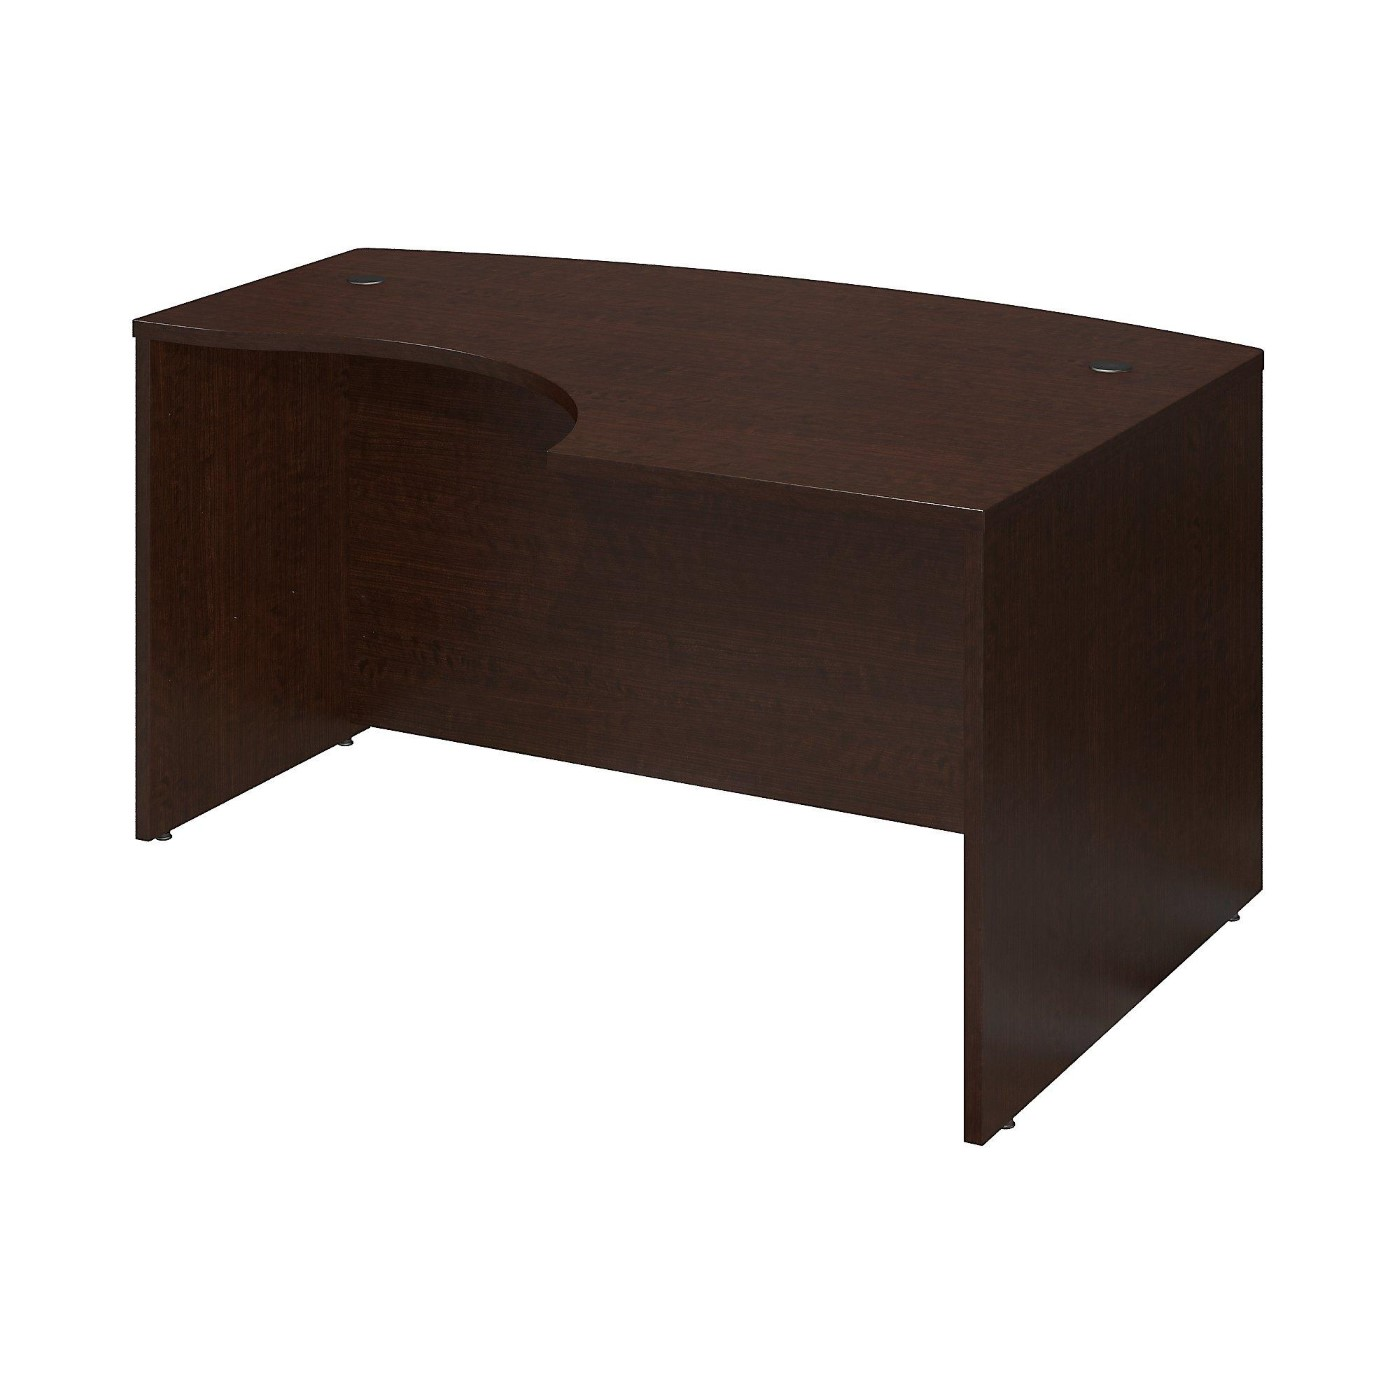 BUSH BUSINESS FURNITURE SERIES C 60W X 43D LEFT HANDED L BOW DESK. FREE SHIPPING.